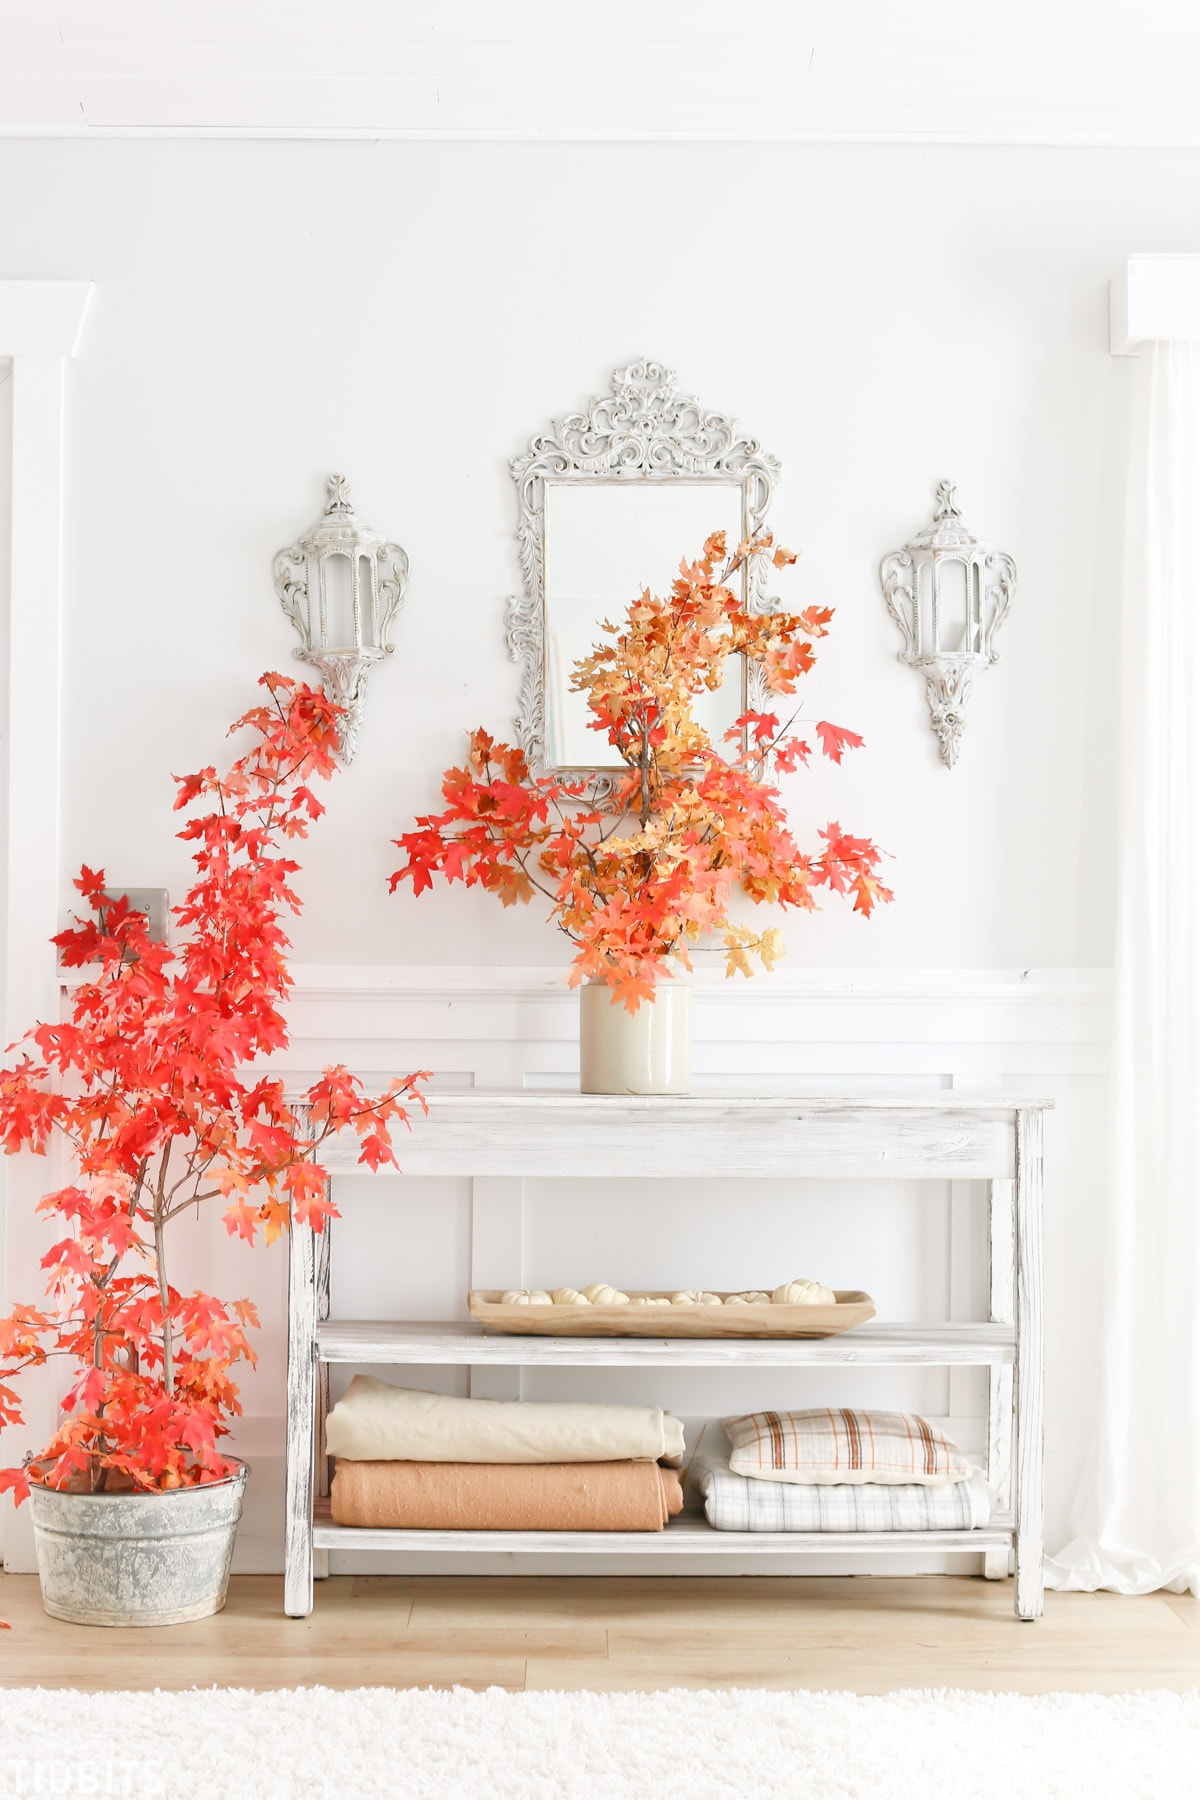 Enjoy the changing color of leaves outside and inside the home! Fall leaves in decor, by TIDBITS.